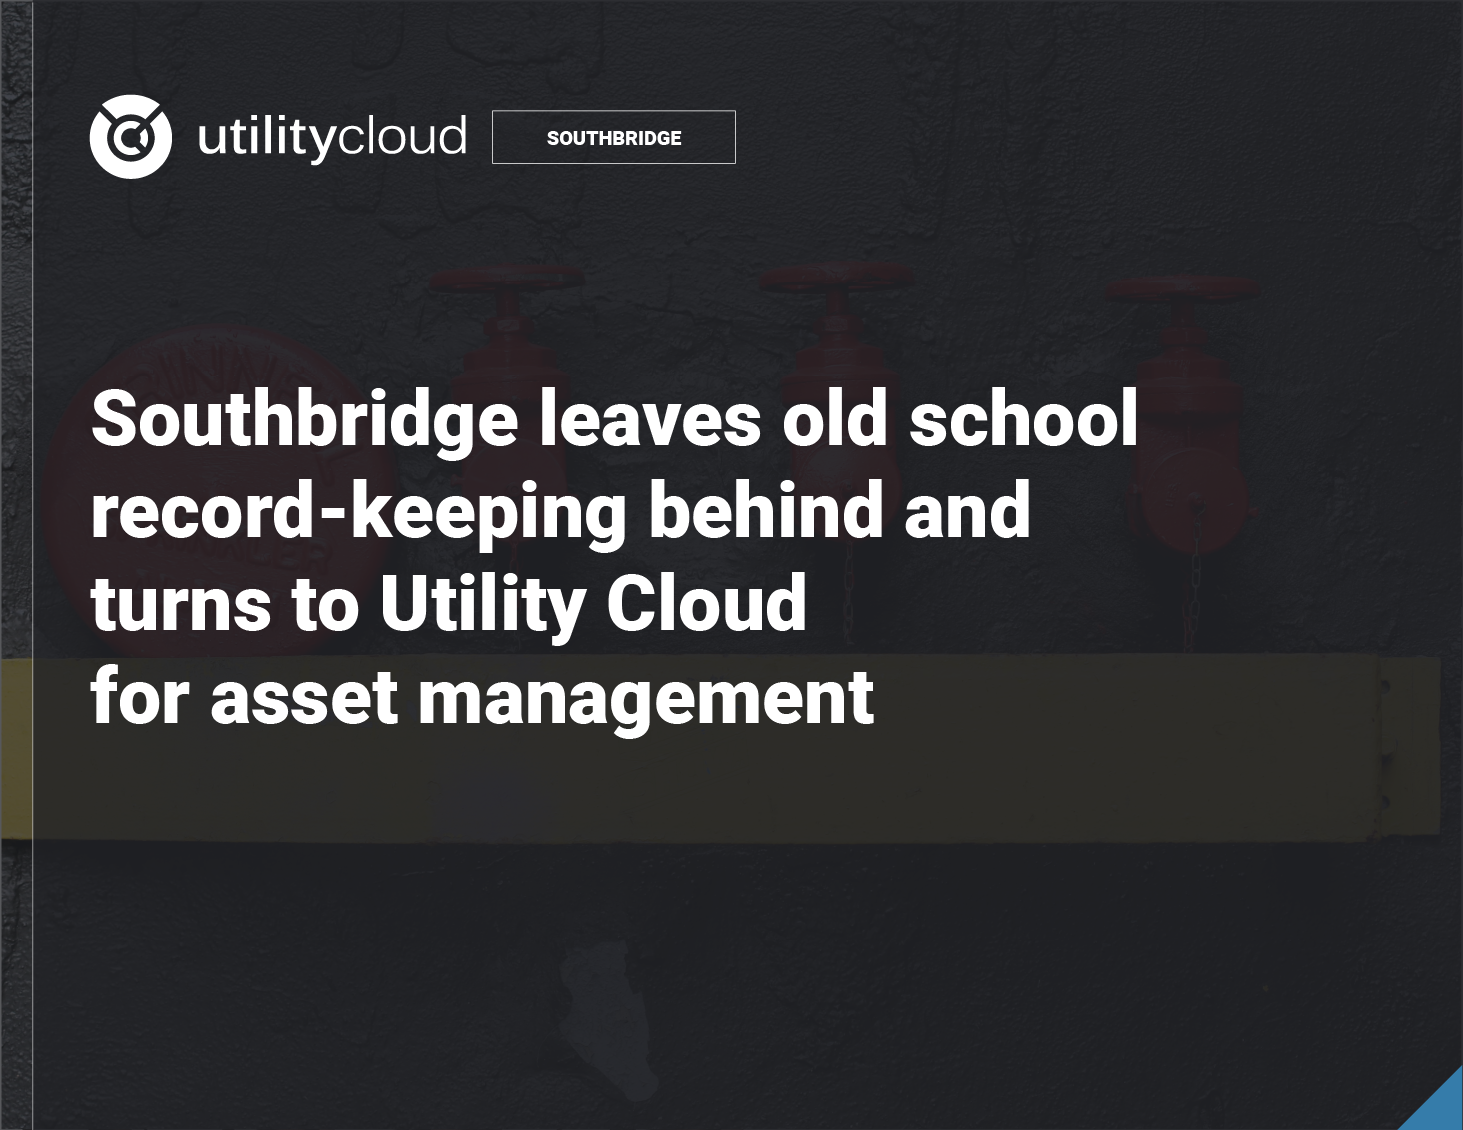 Southbridge Utility Cloud